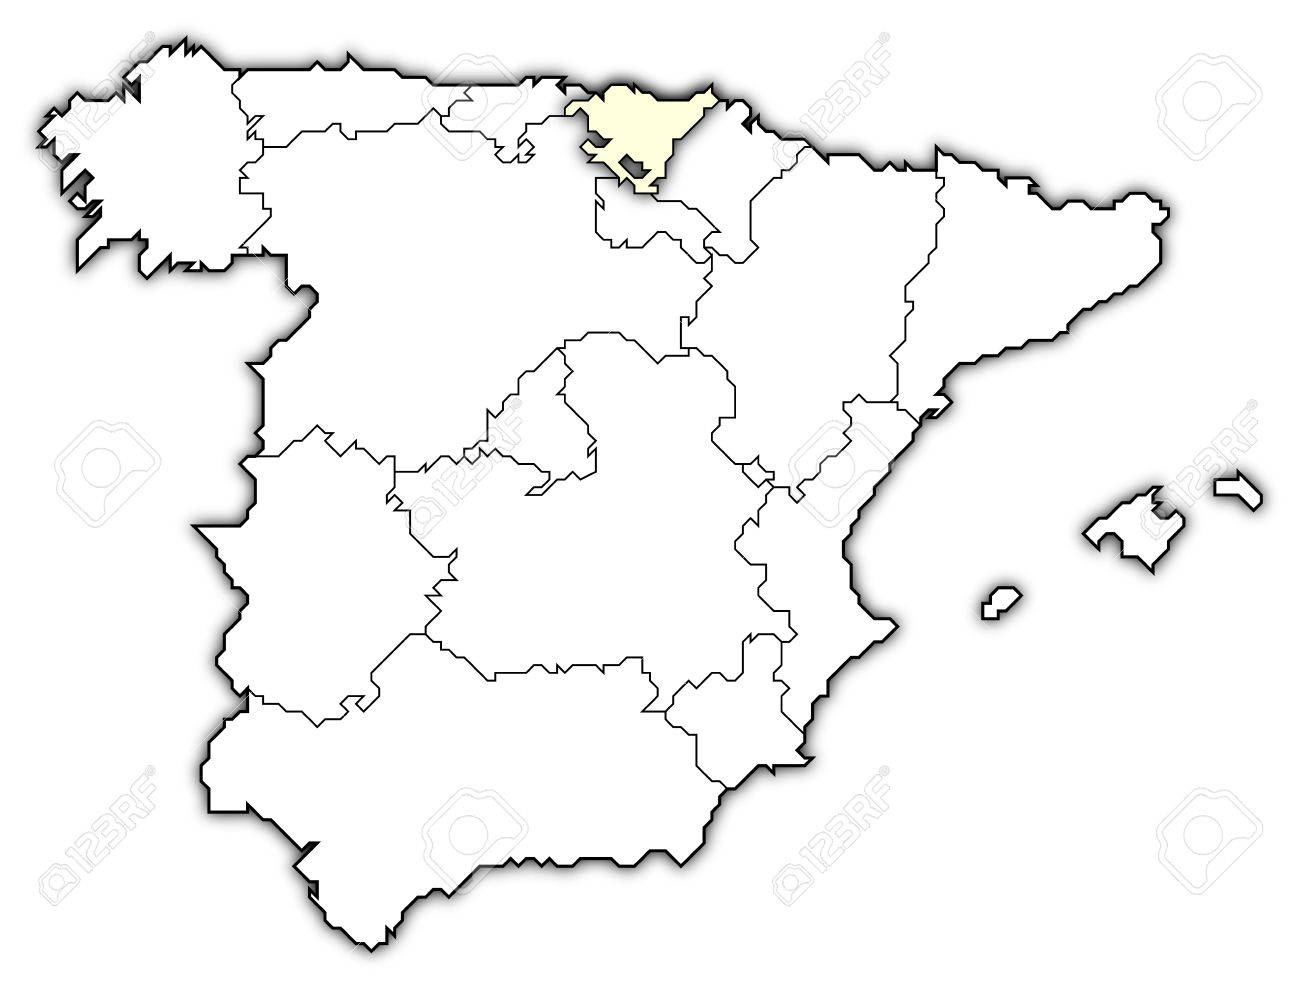 Basque Map Of Spain.Political Map Of Spain With The Several Regions Where Basque